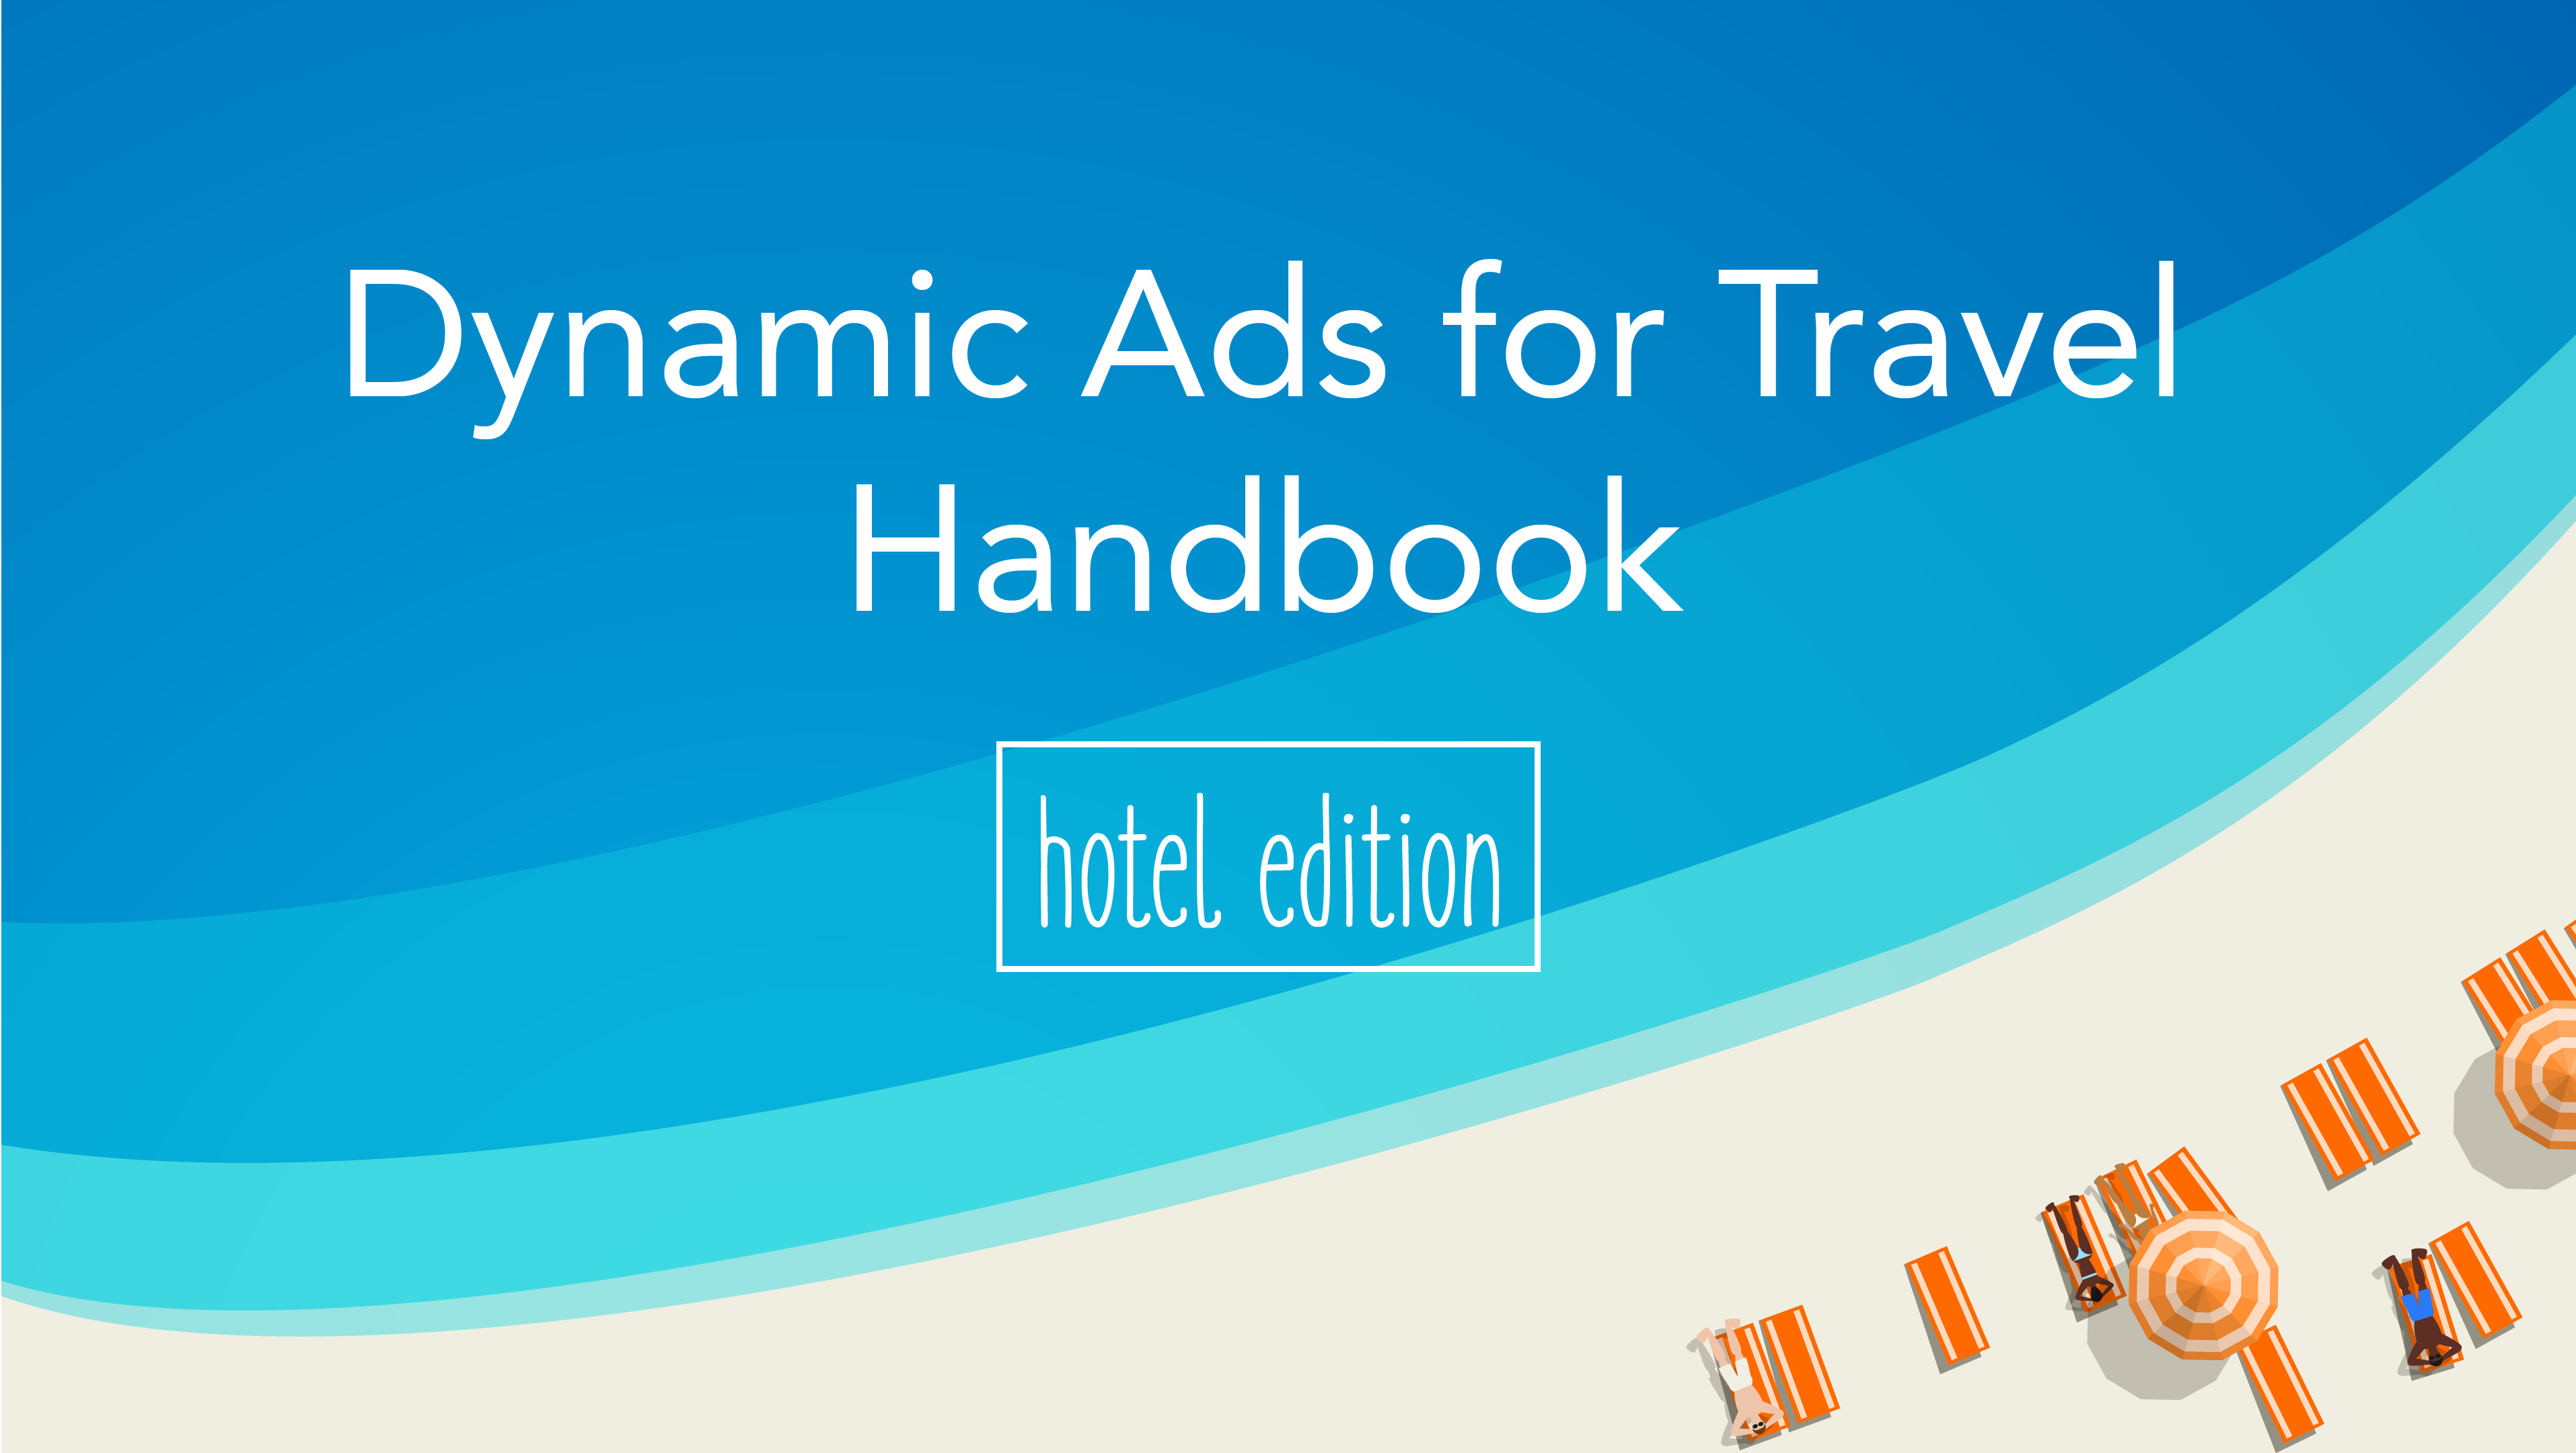 Dynamic Ads for Travel Handbook